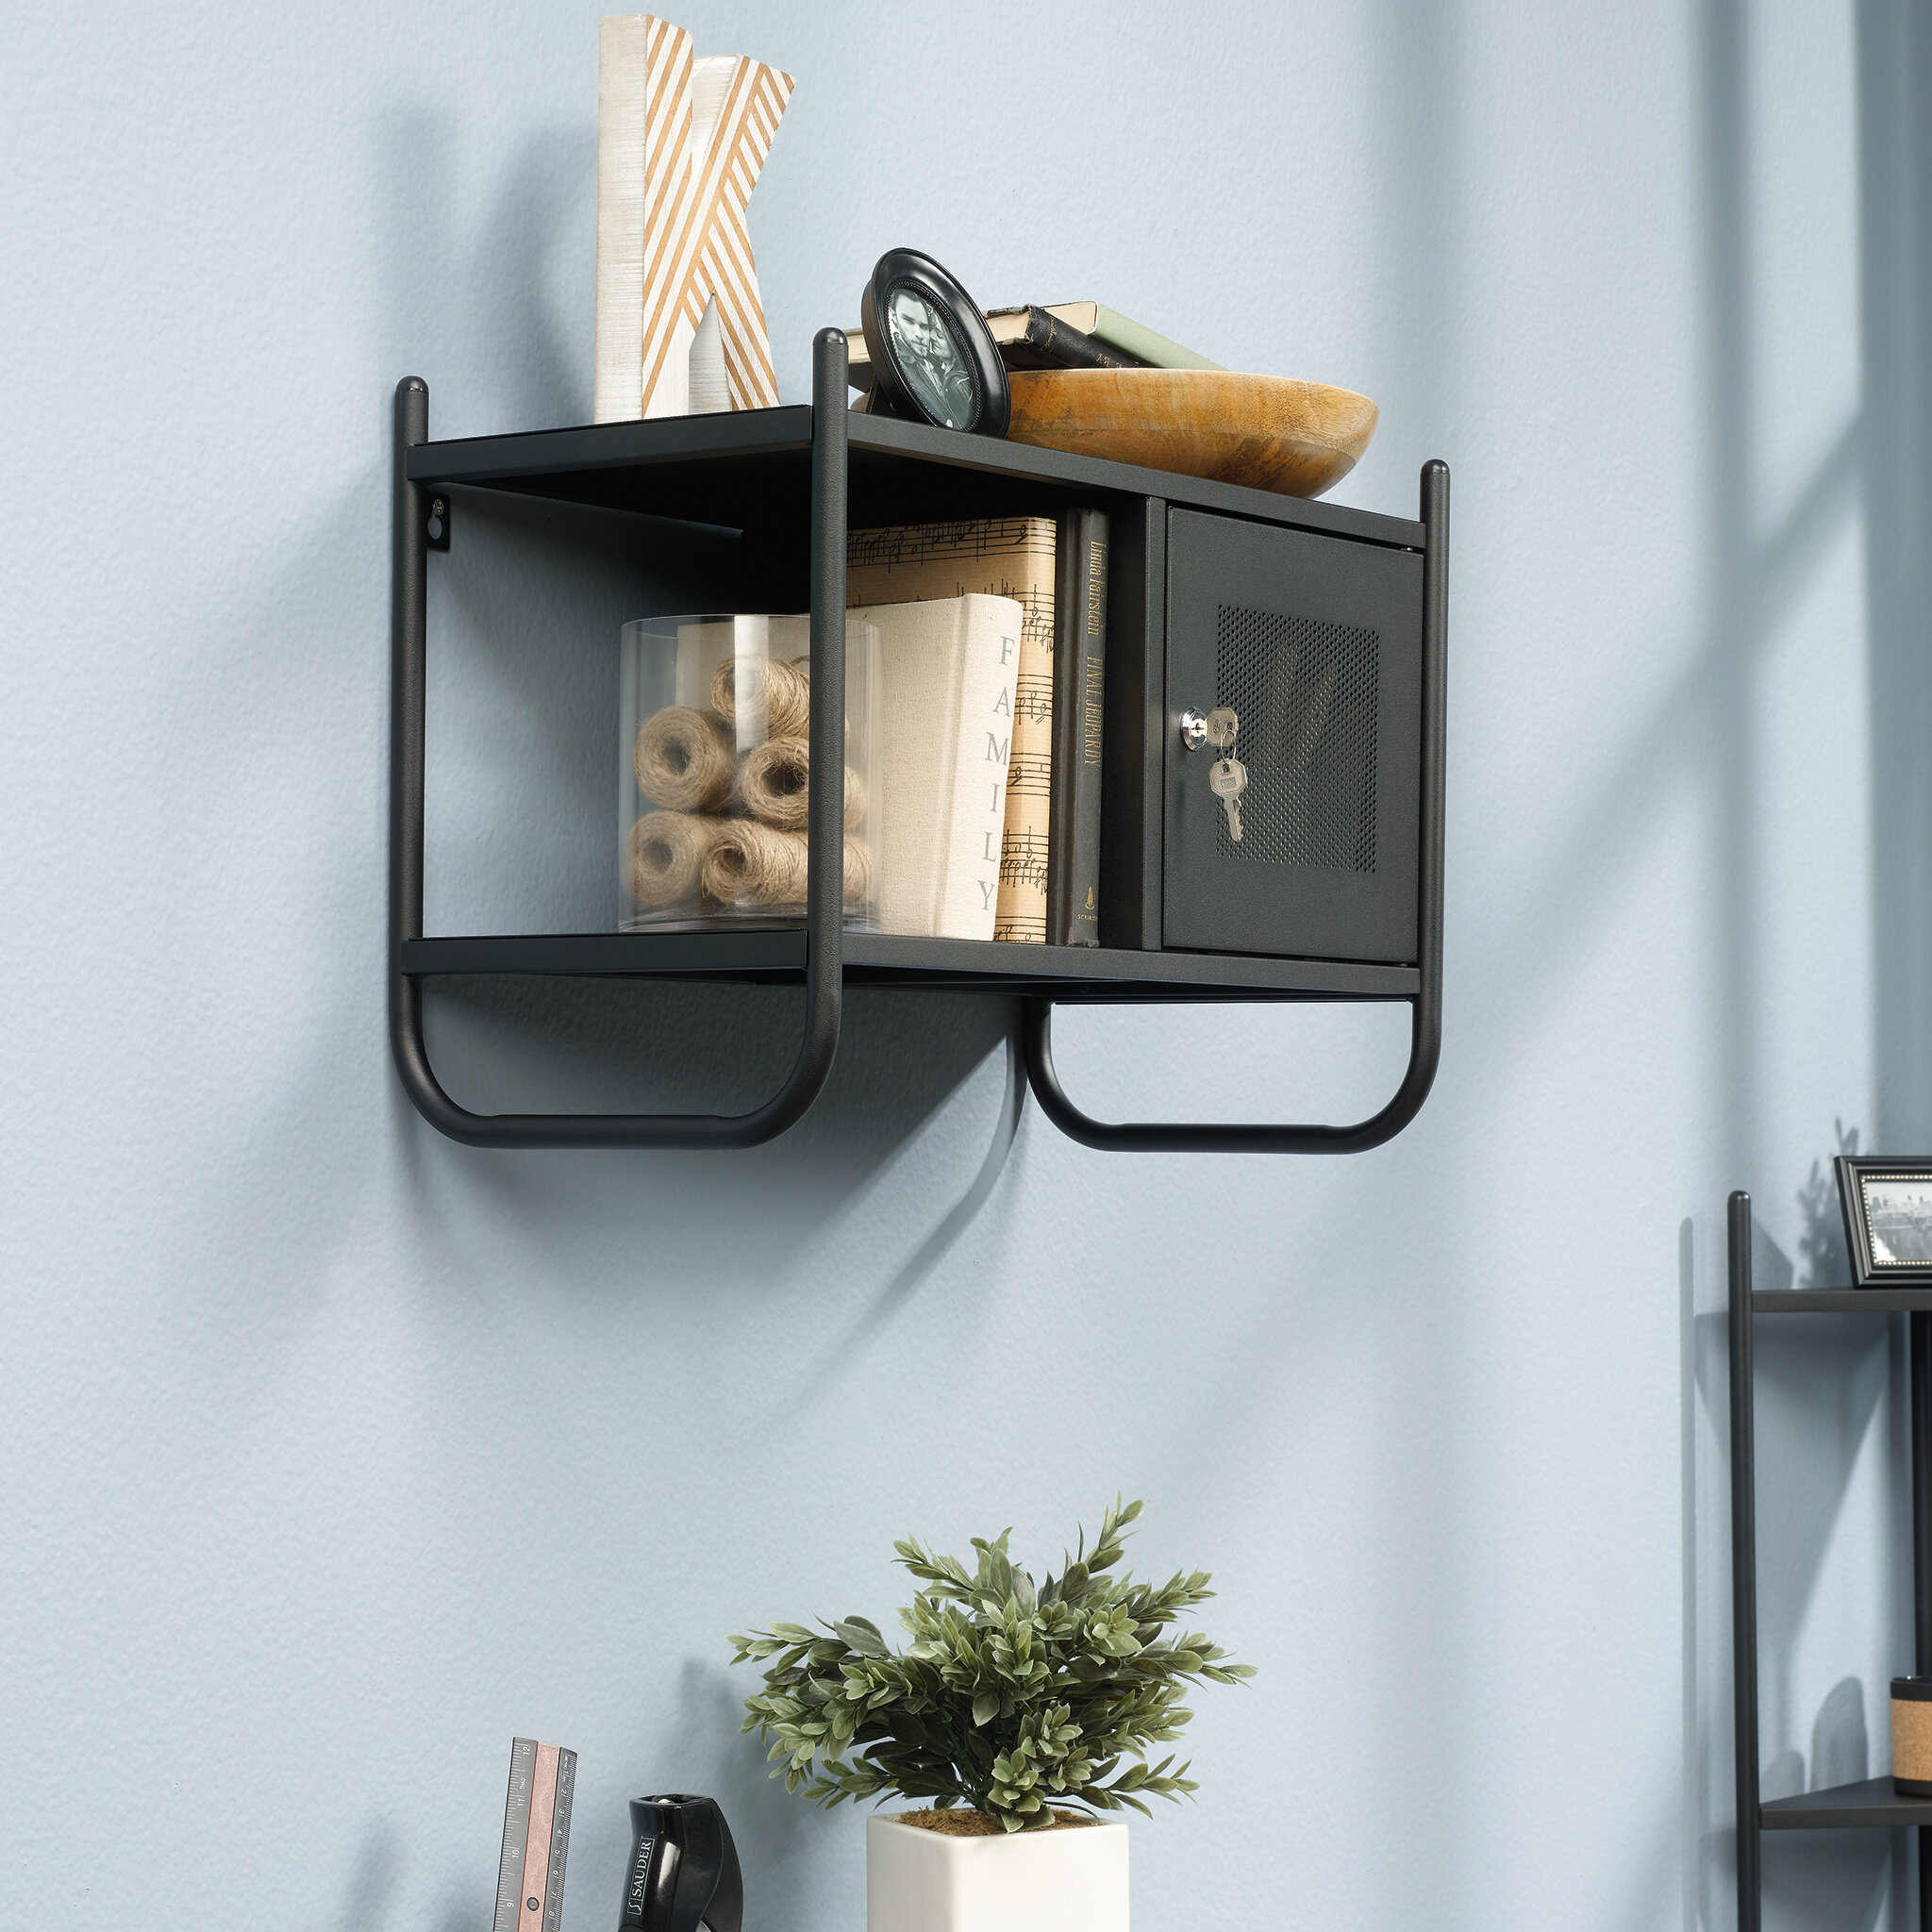 Cabinet 17 Stories Bathroom Cabinets Shelving You Ll Love In 2021 Wayfair